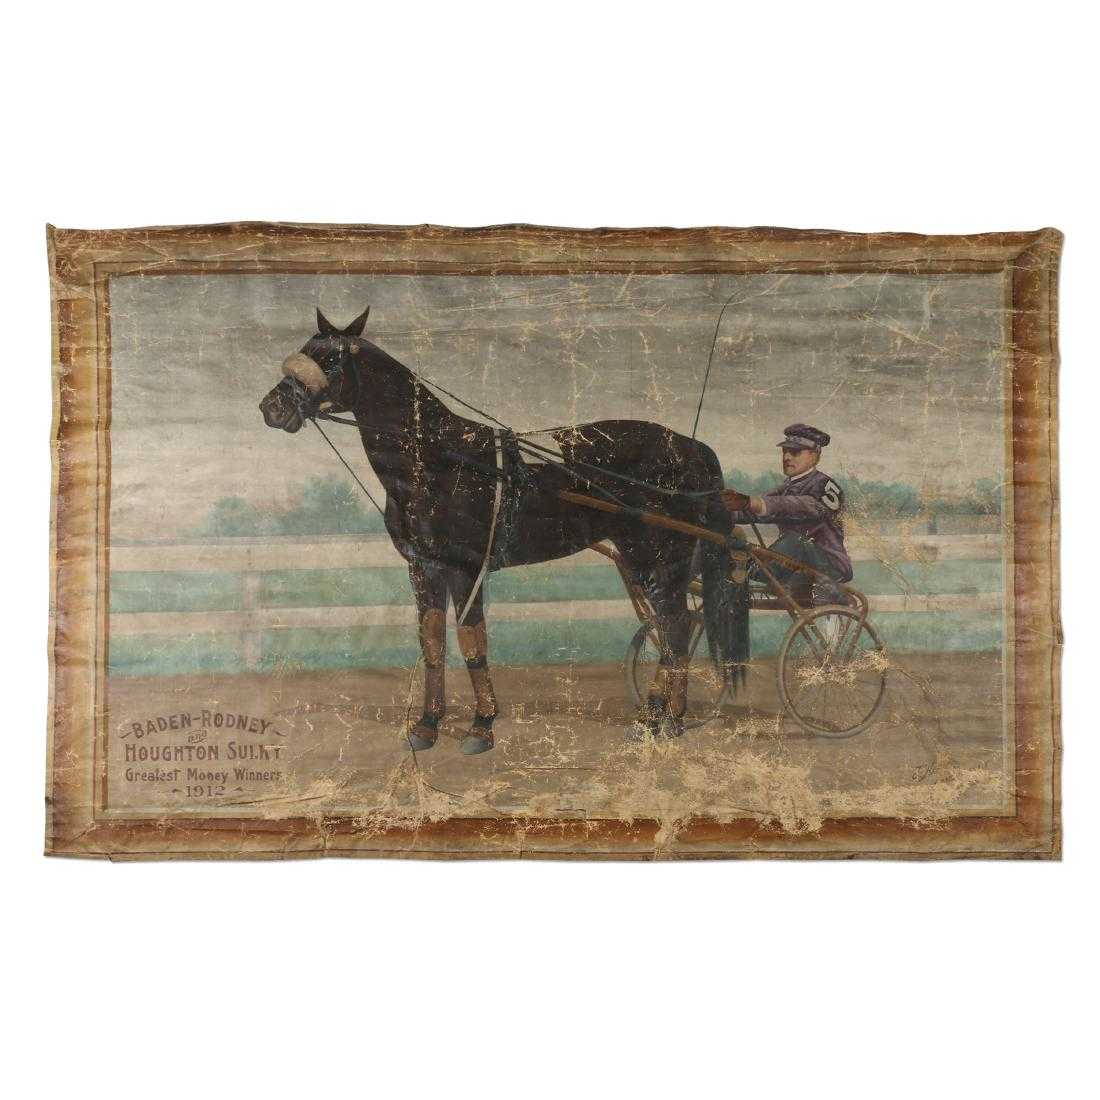 "1912 horse racing carts advertising banner (""Baden-Rodney and Houghton-Sulky / Greatest Money Winners / 1912""), signed ""J.F. Harvey / Amsterdam, N.Y."" (est. CA$2,000-$3,000)."